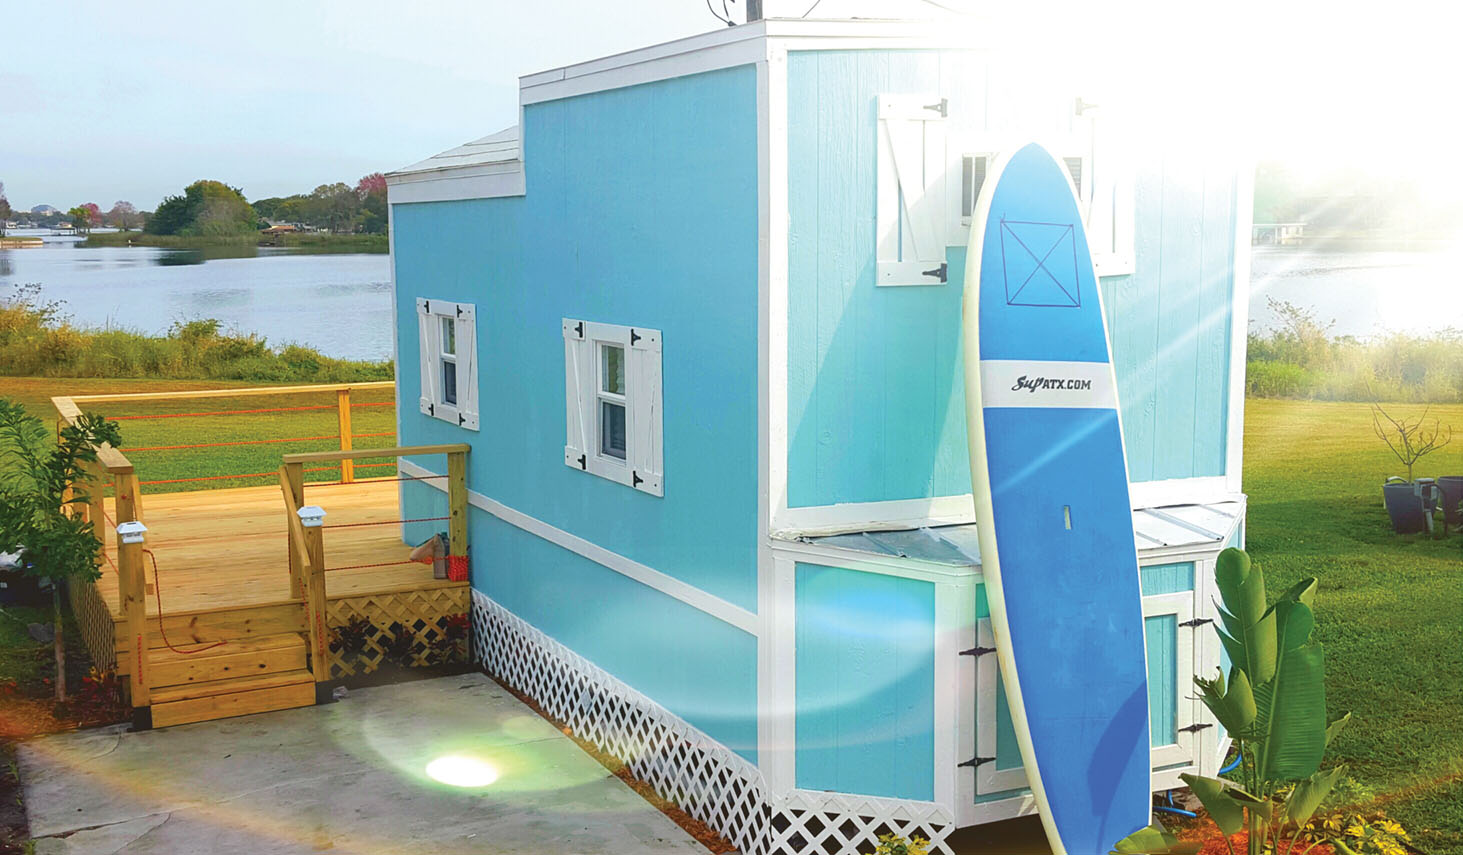 Tiny Houses Find a Home in Central Florida